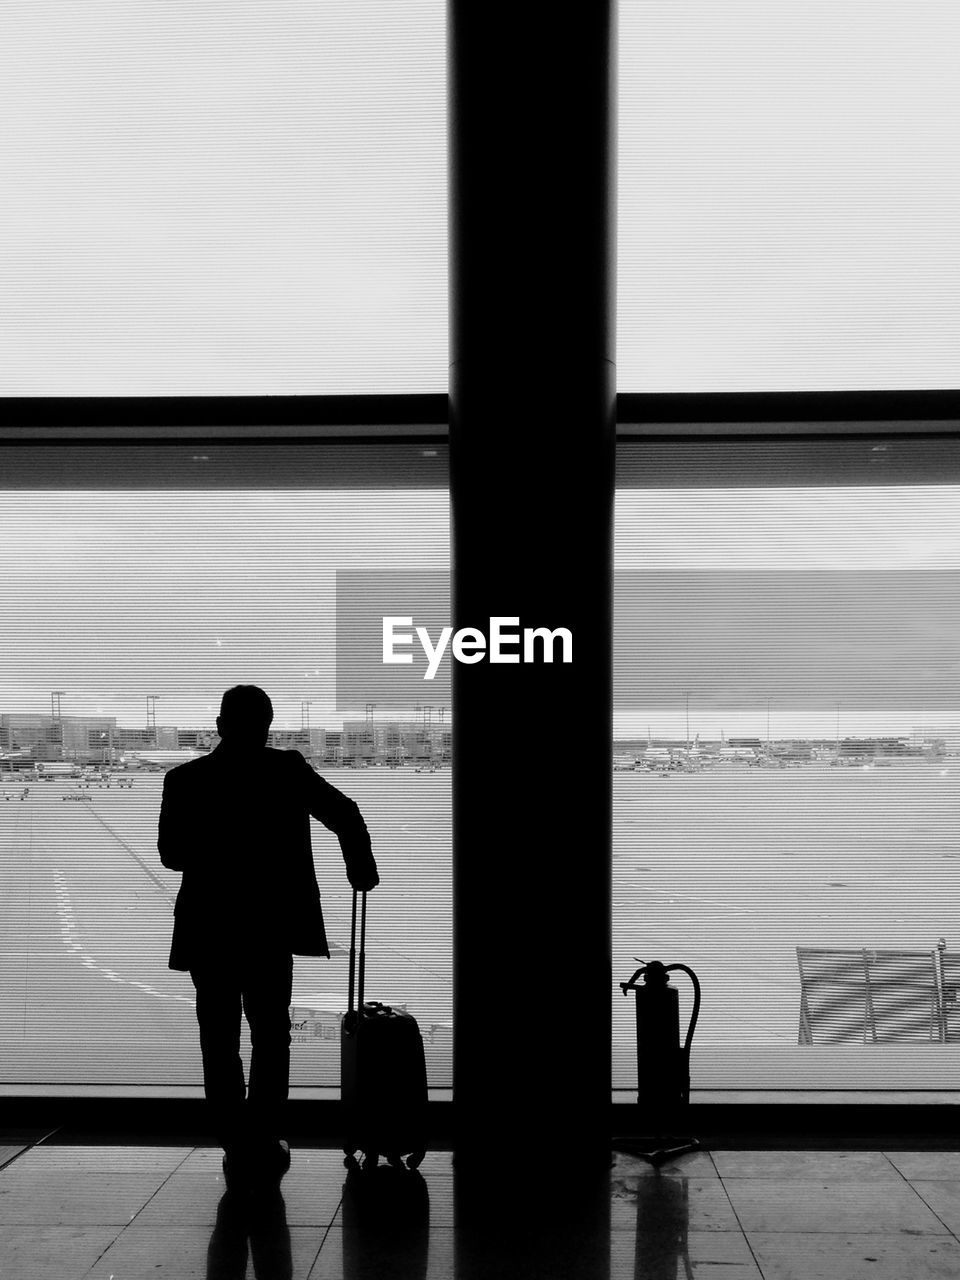 Silhouette man with luggage standing in airport